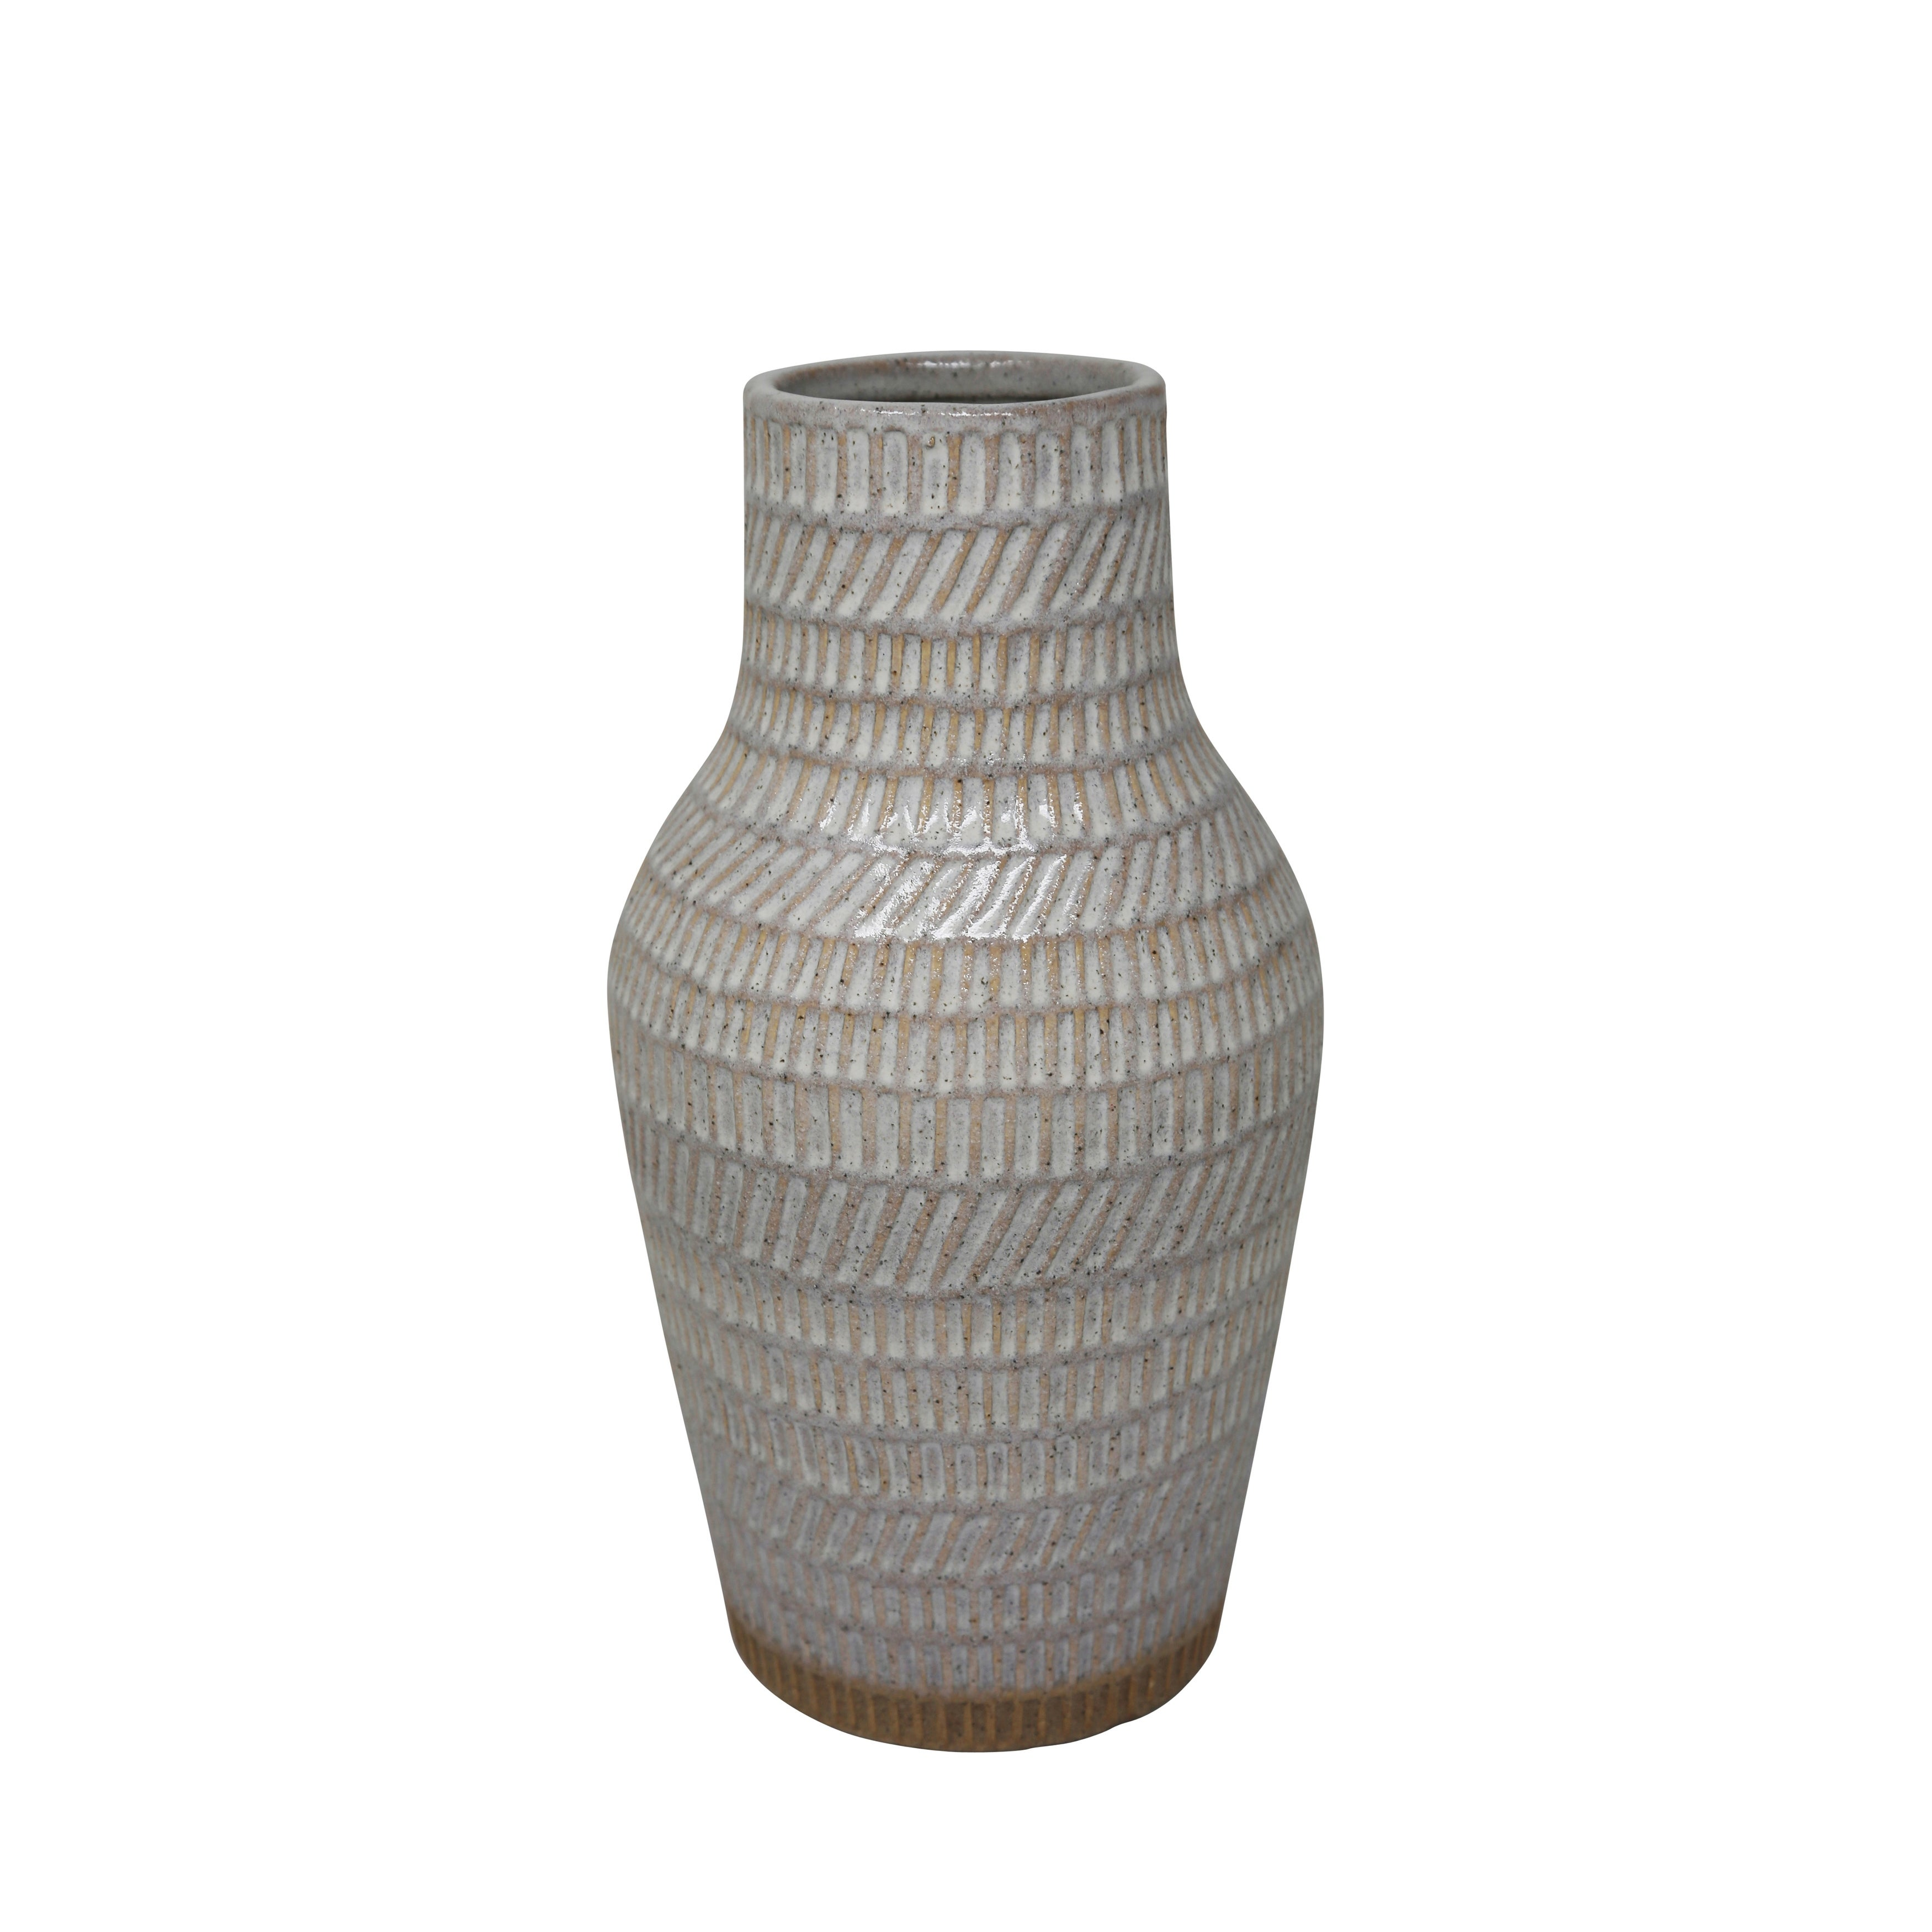 Ceramic Decorative Vase with Embossed Design Pattern, White and Brown